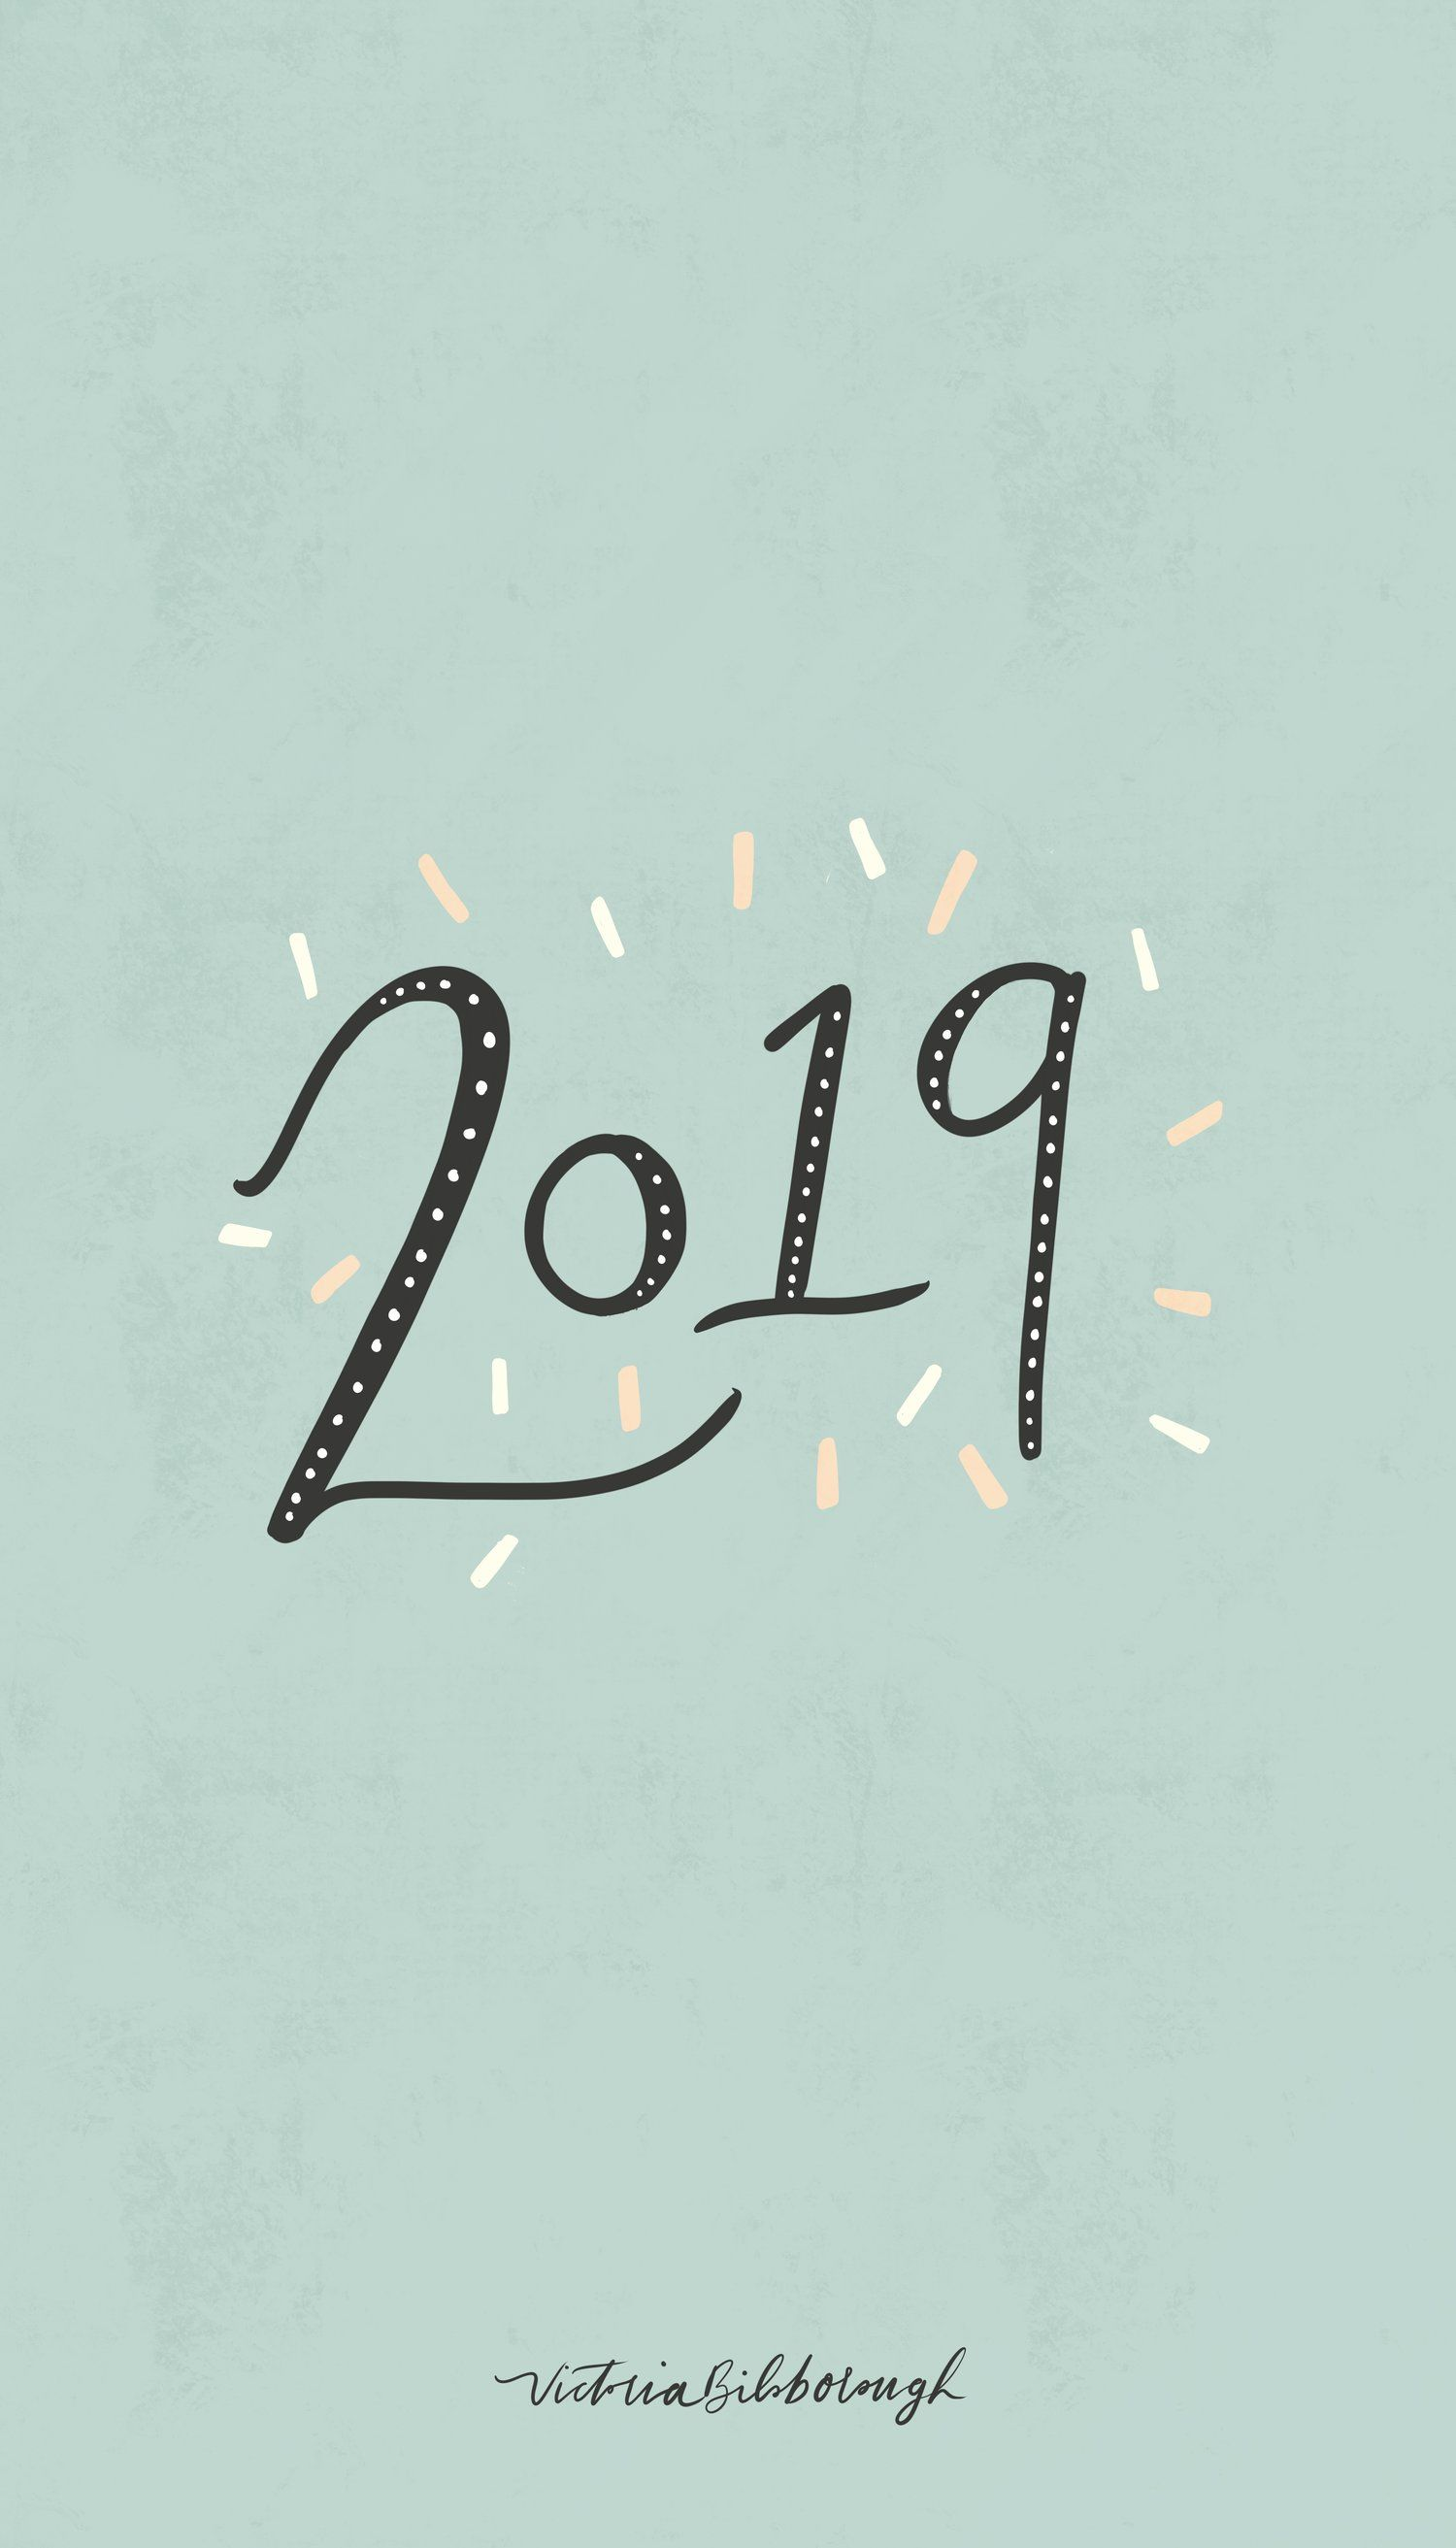 Happy New Year Free Wallpapers 2019 Victoria Bilsborough Iphone Wallpaper Fall Cute Wallpaper Backgrounds Phone Background Patterns